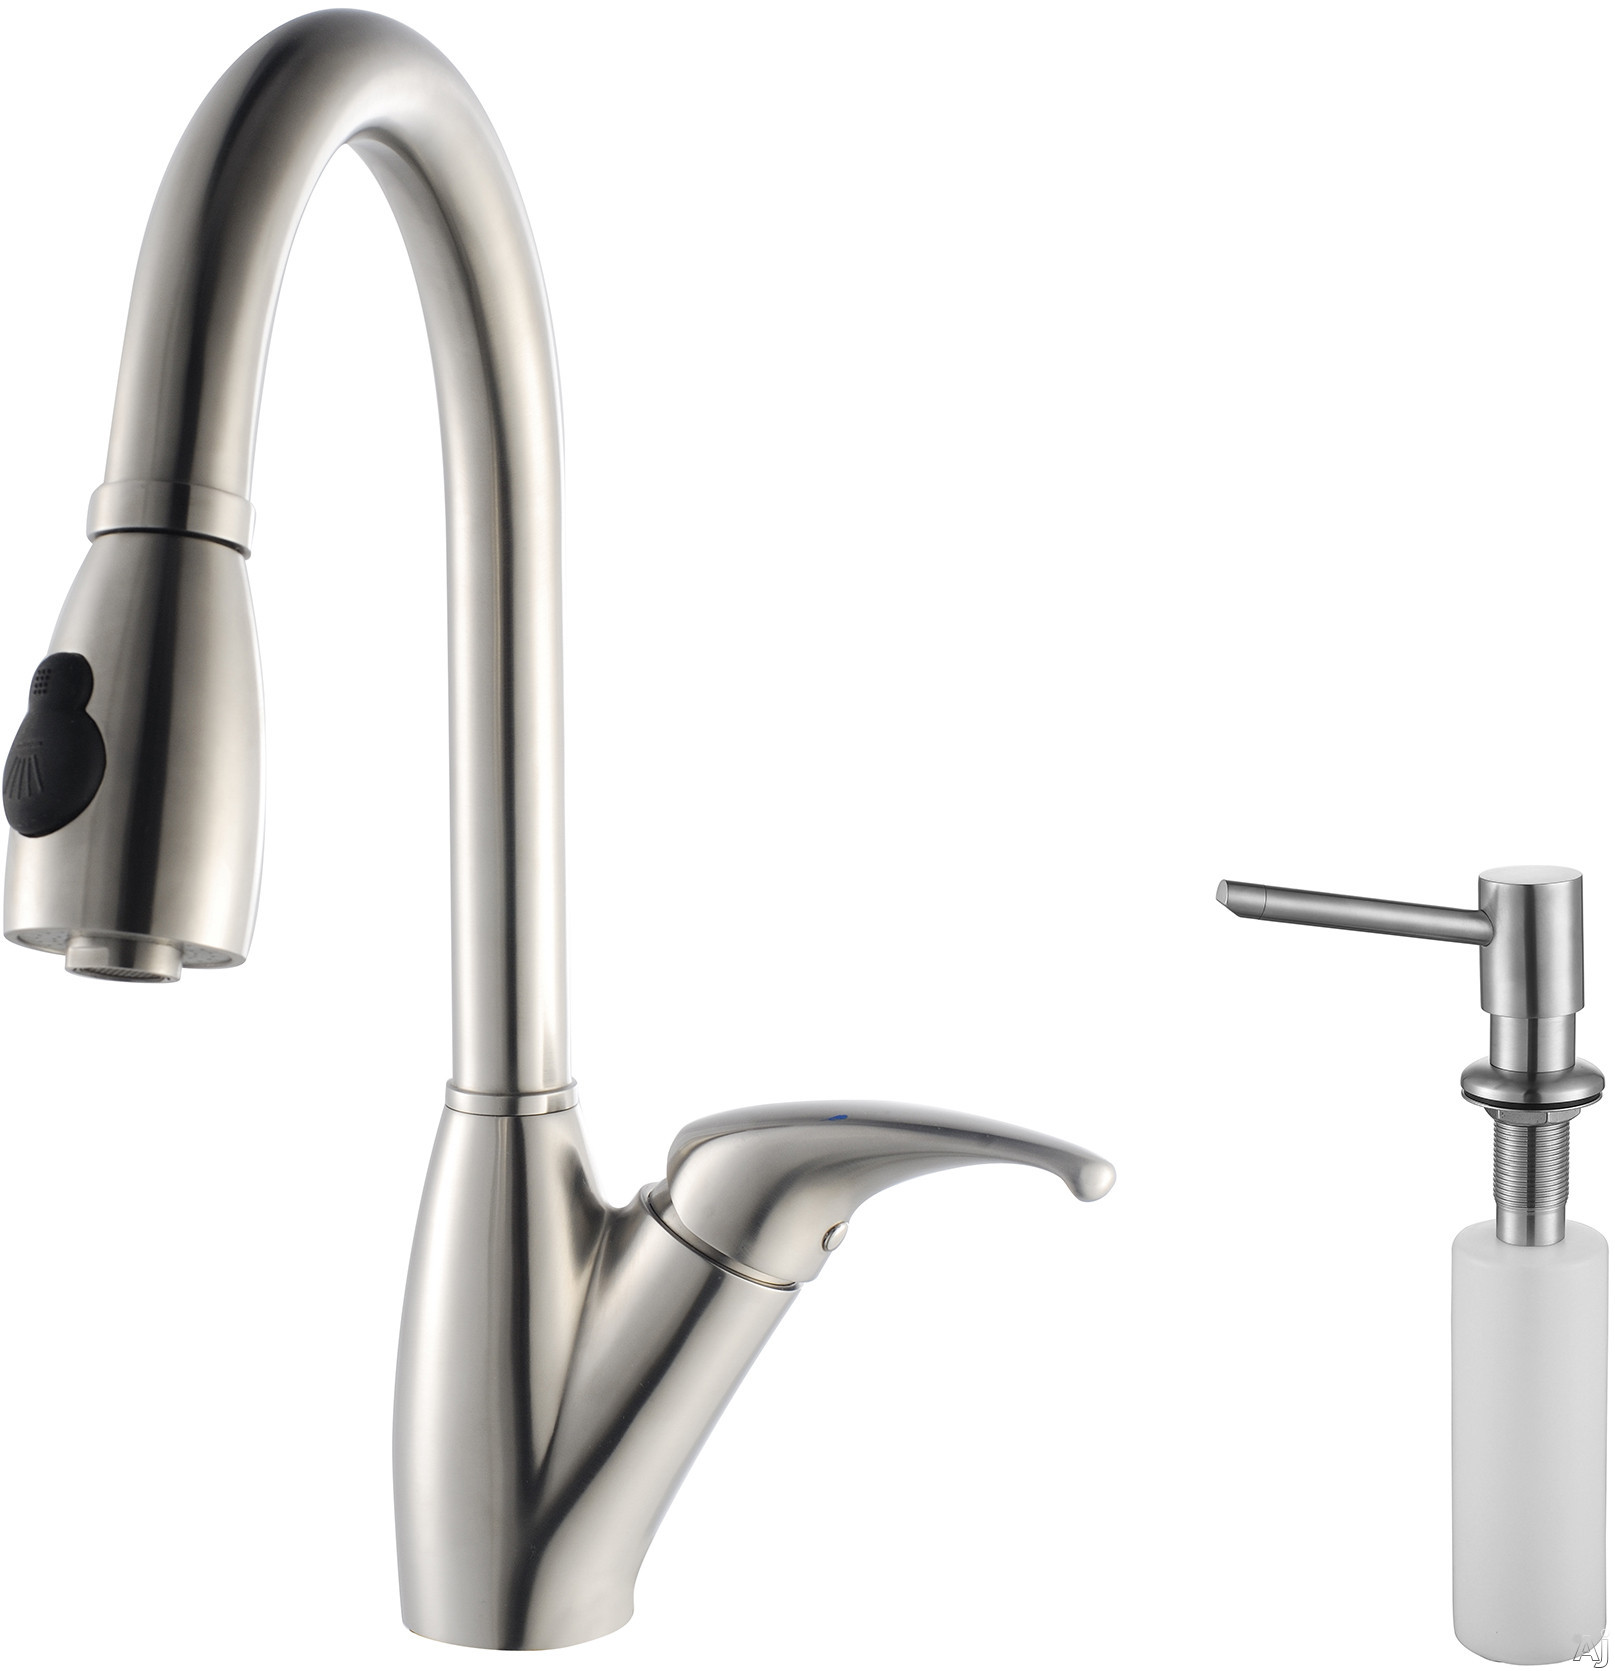 Kraus Kpf2120sd20 Single Lever Pull Out Faucet With 9 Spout Reach 24 Spring Tensioned